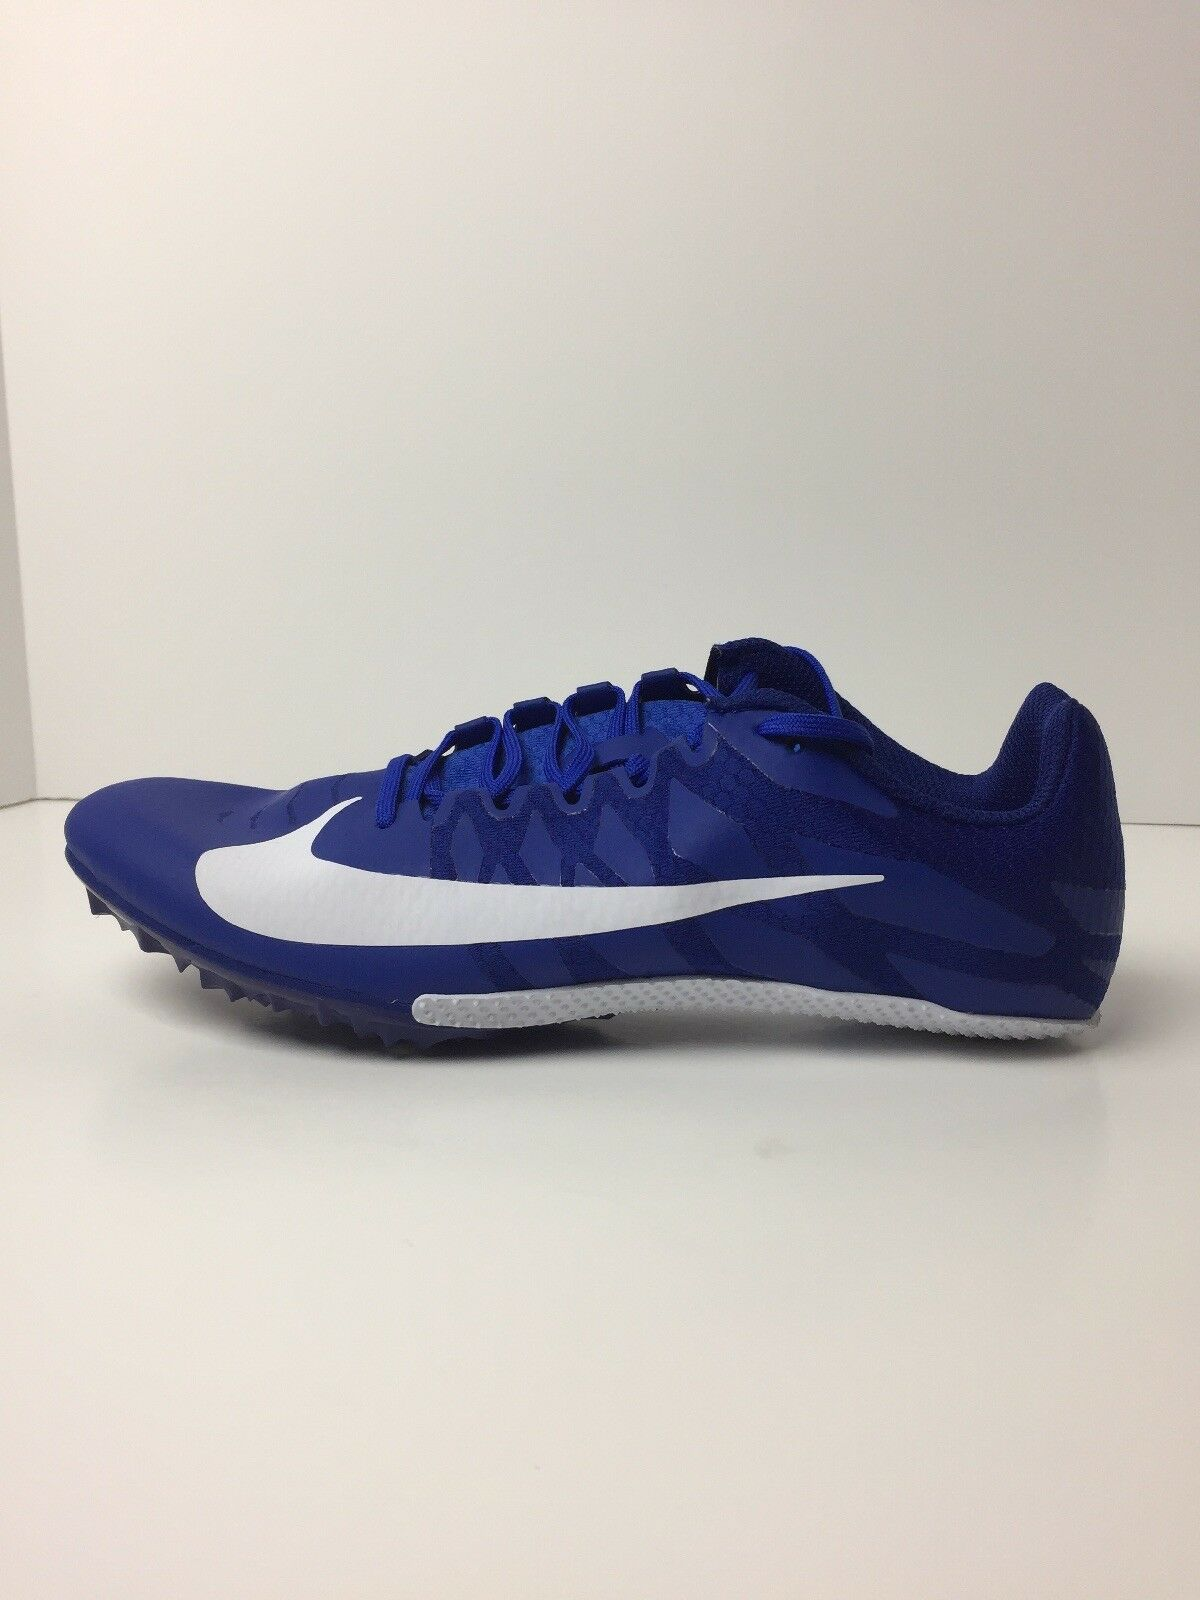 Nike Zoom Rival S9 bluee White 907564 411 Sprint Track shoes Size 10.5